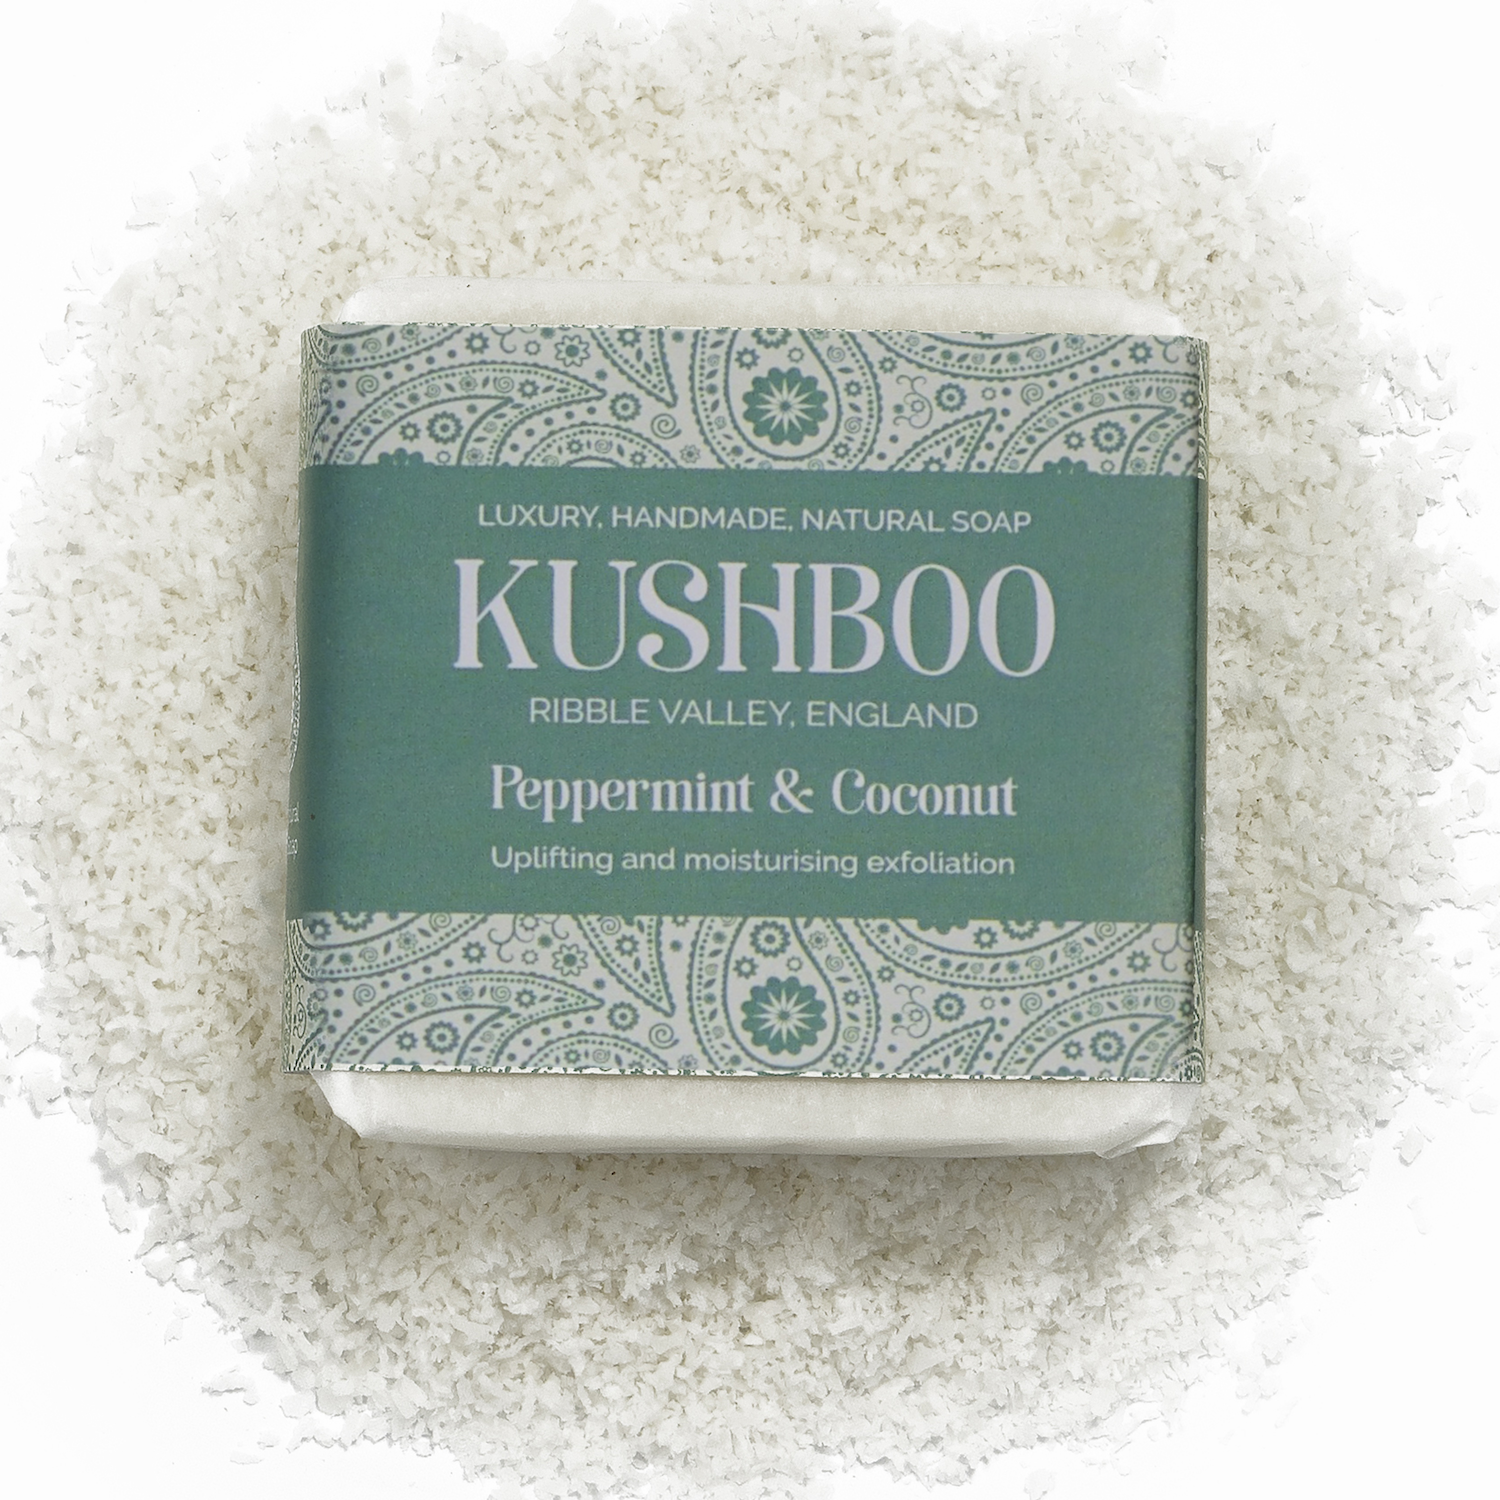 Kushboo Peppermint and Coconut Soap